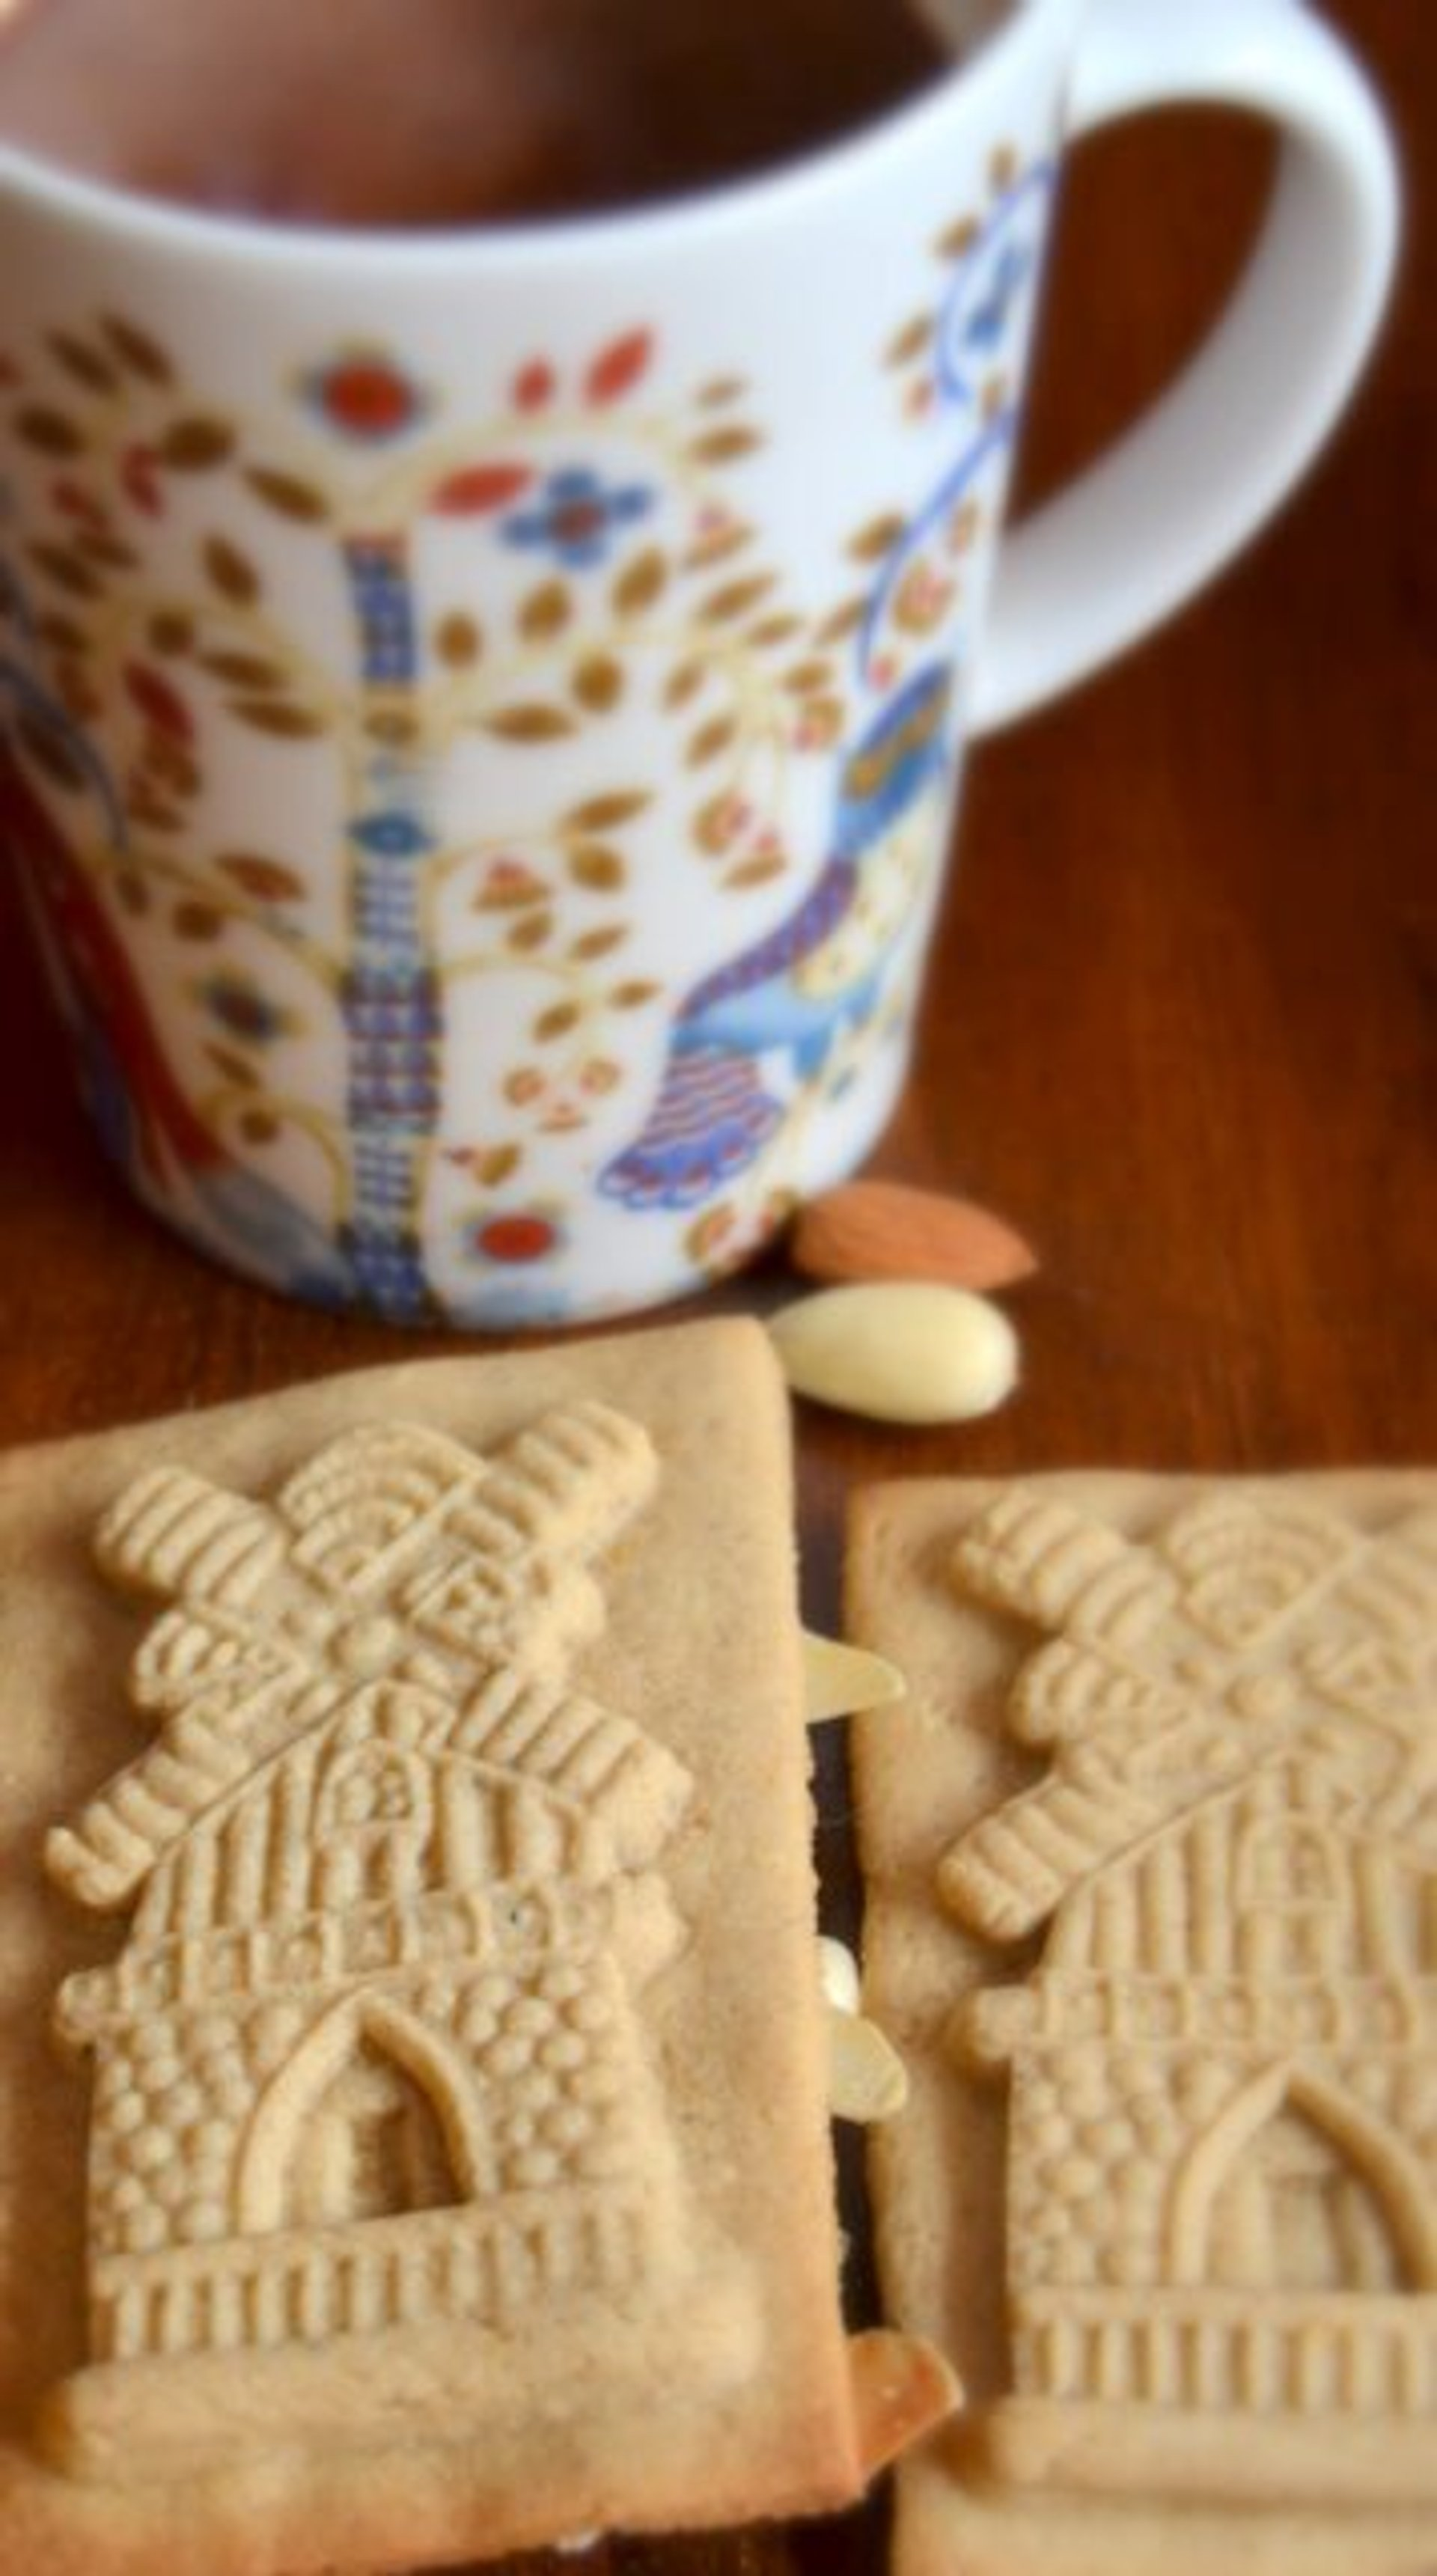 Speculaas in The Netherlands - Best Season 2020